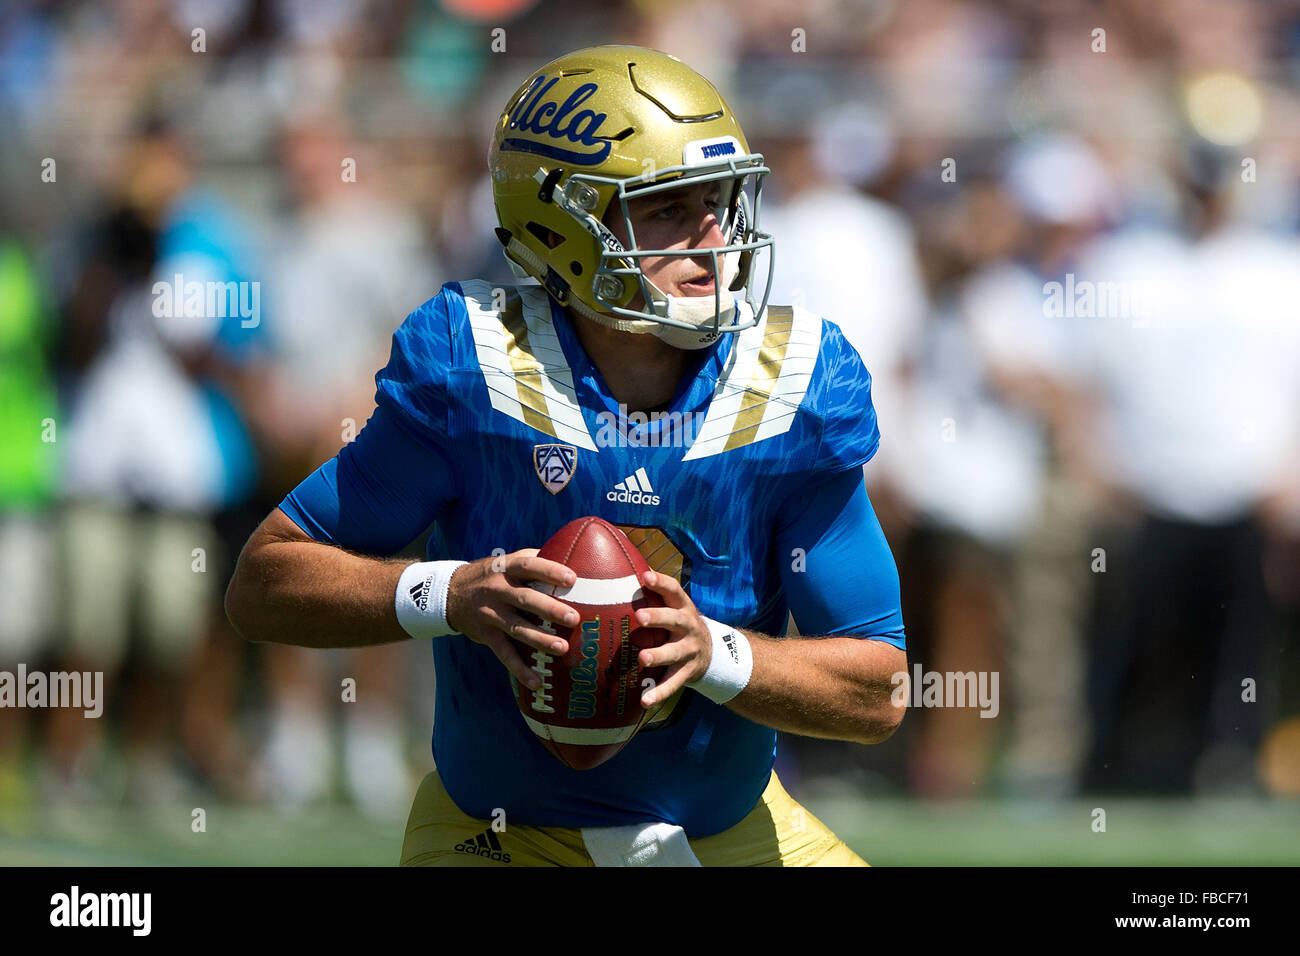 Quarterback Josh Rosen #3 of the UCLA Bruins stands in the pocket against the Virginia Cavaliers during the third - Stock Image